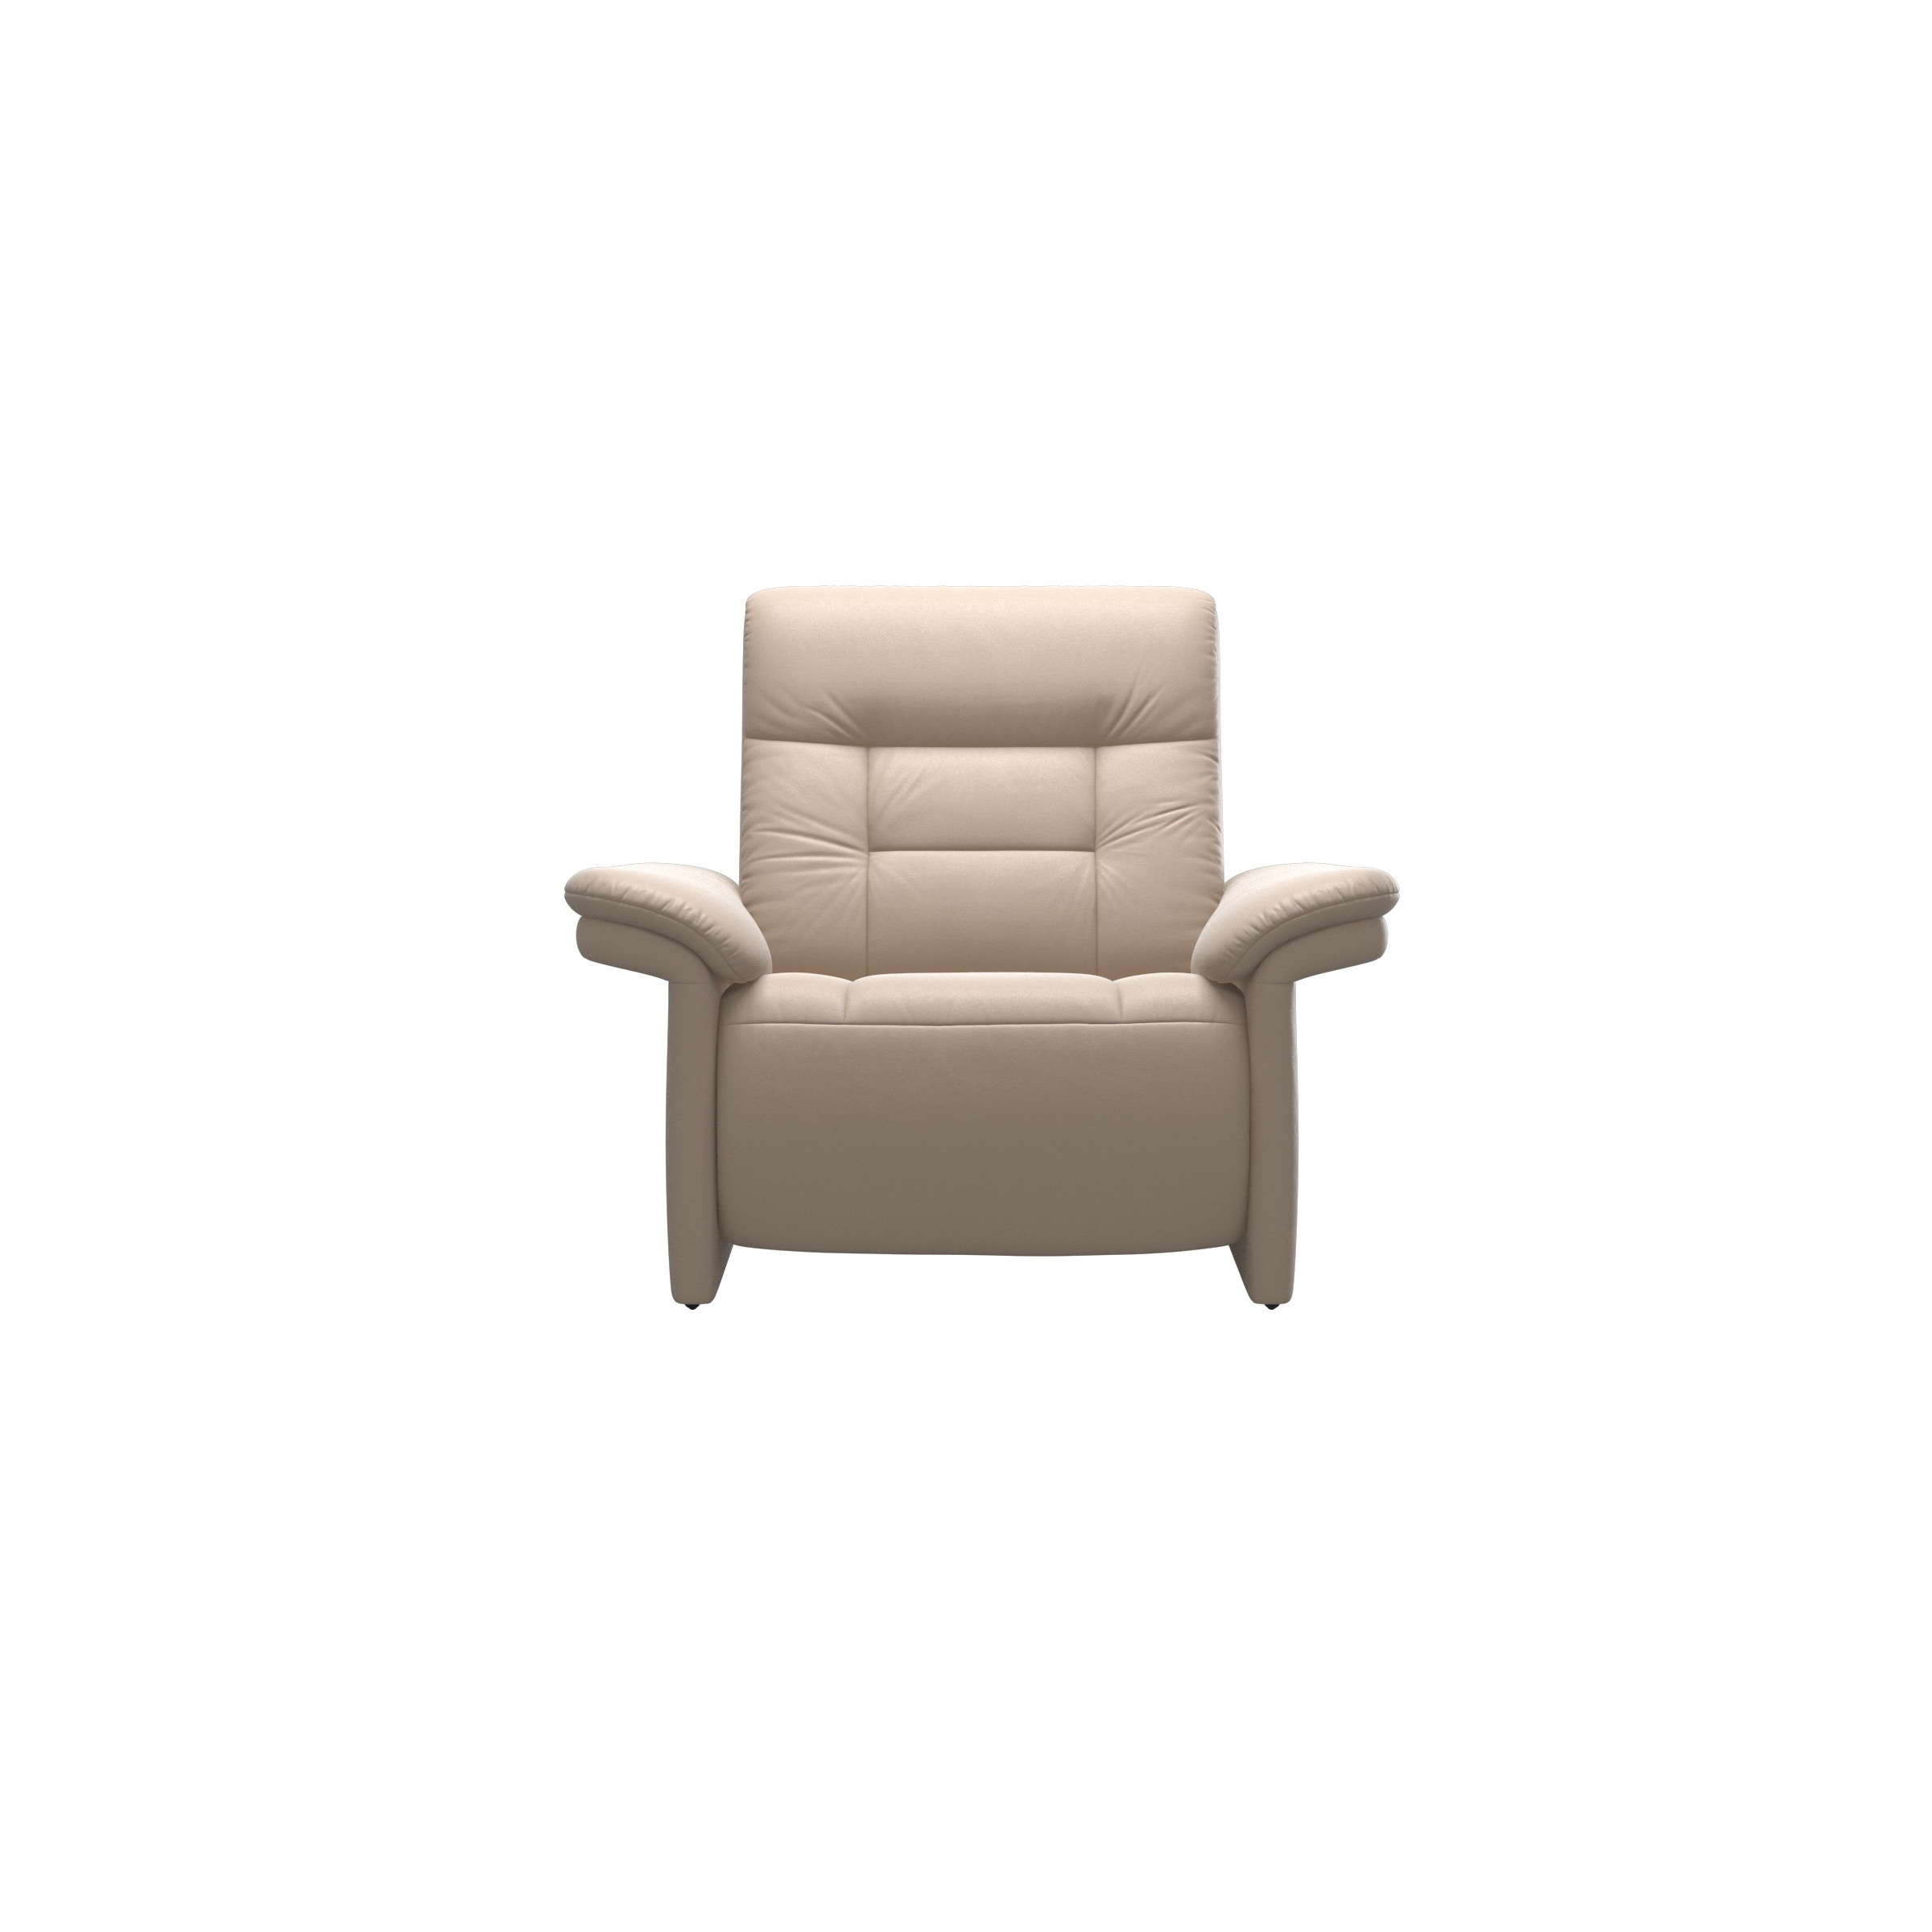 Stressless by Ekornes Living Room Stressless® Mary Chair